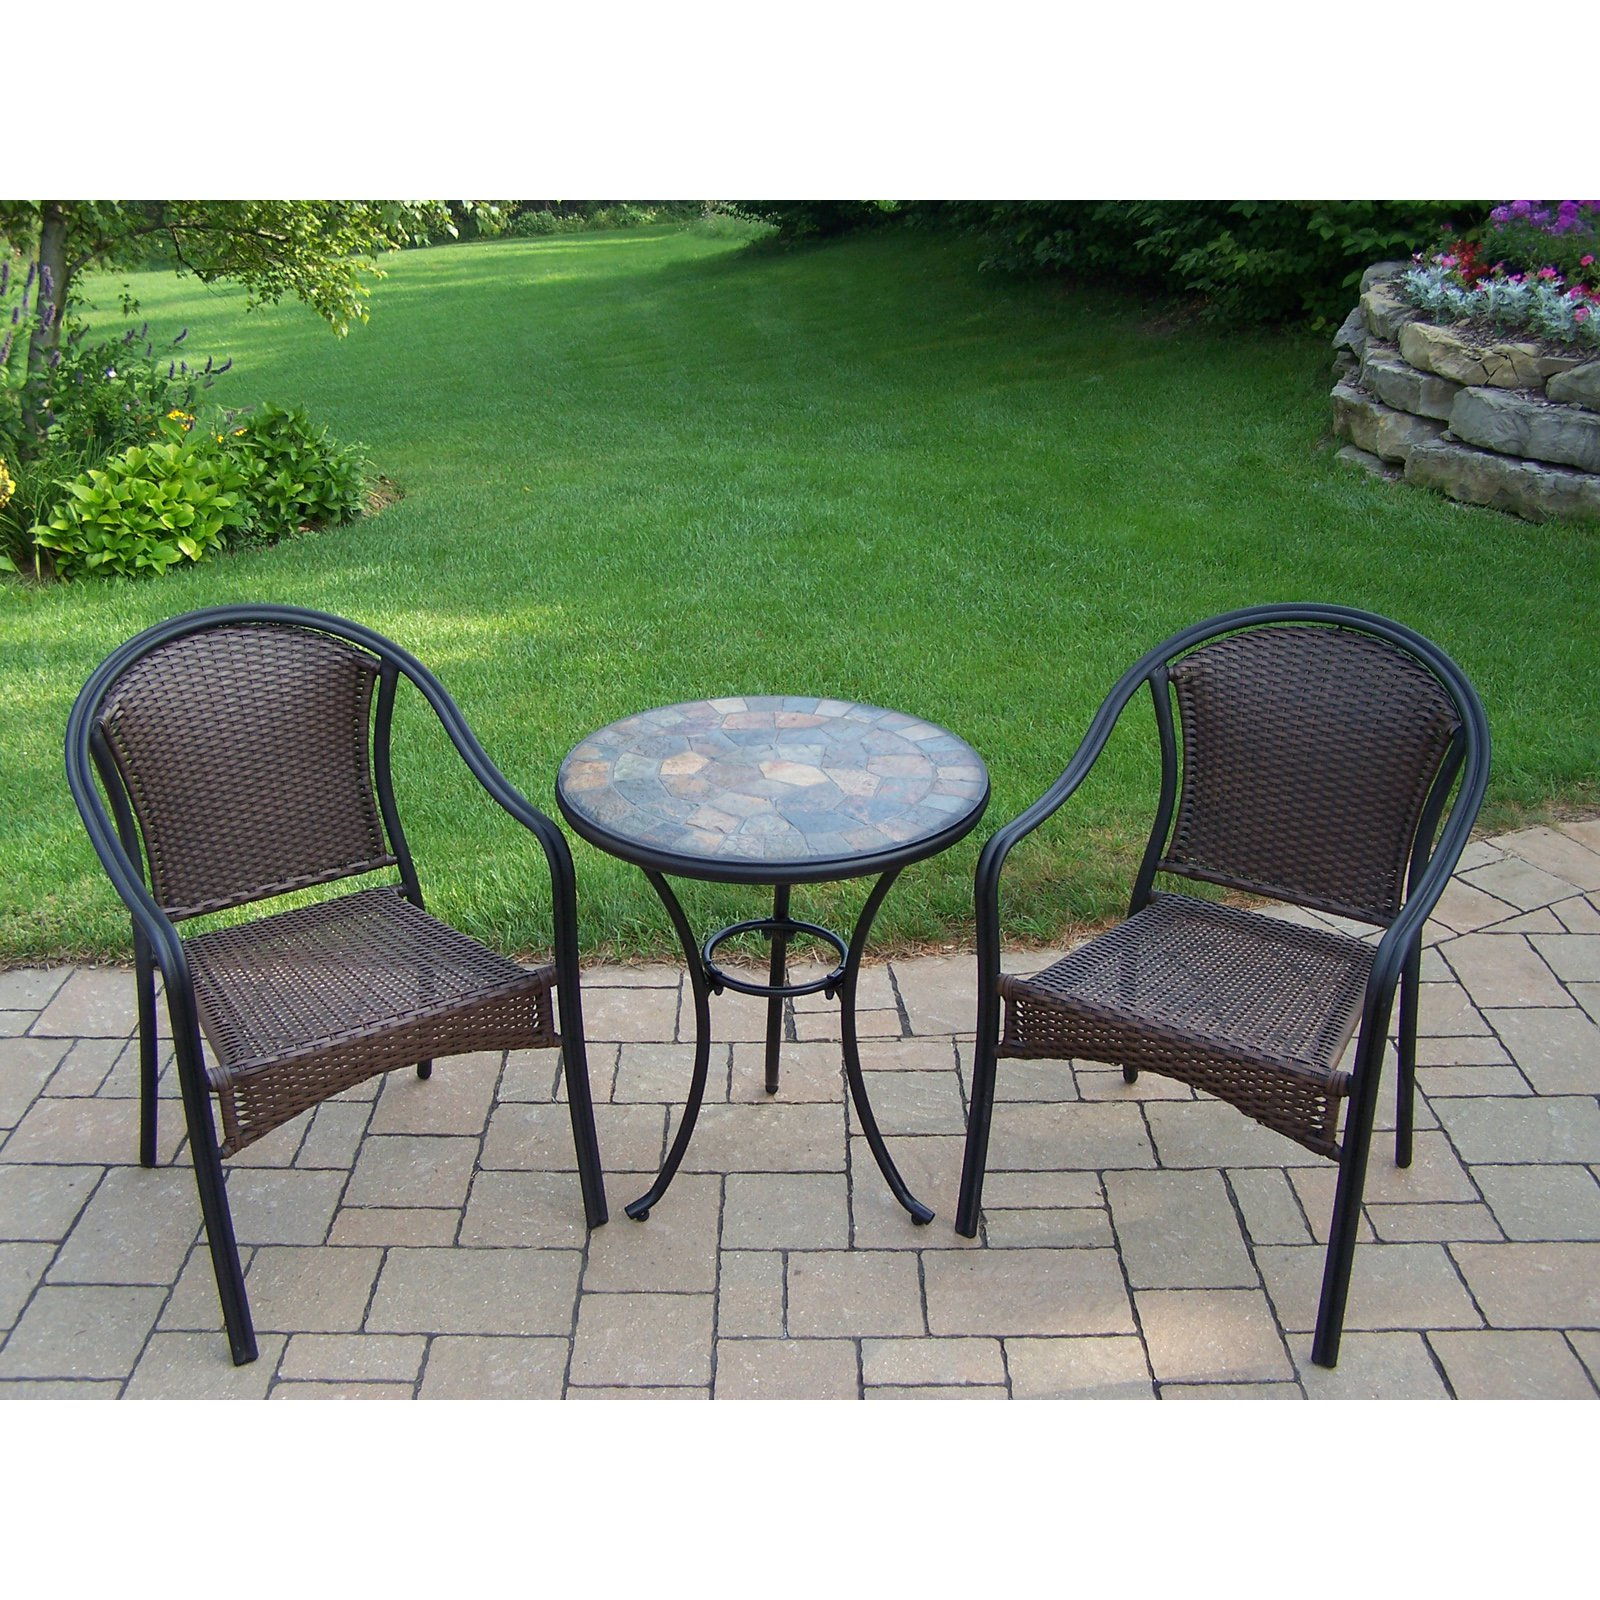 Oakland Living Aged Mosaic Stone Top Bistro Set